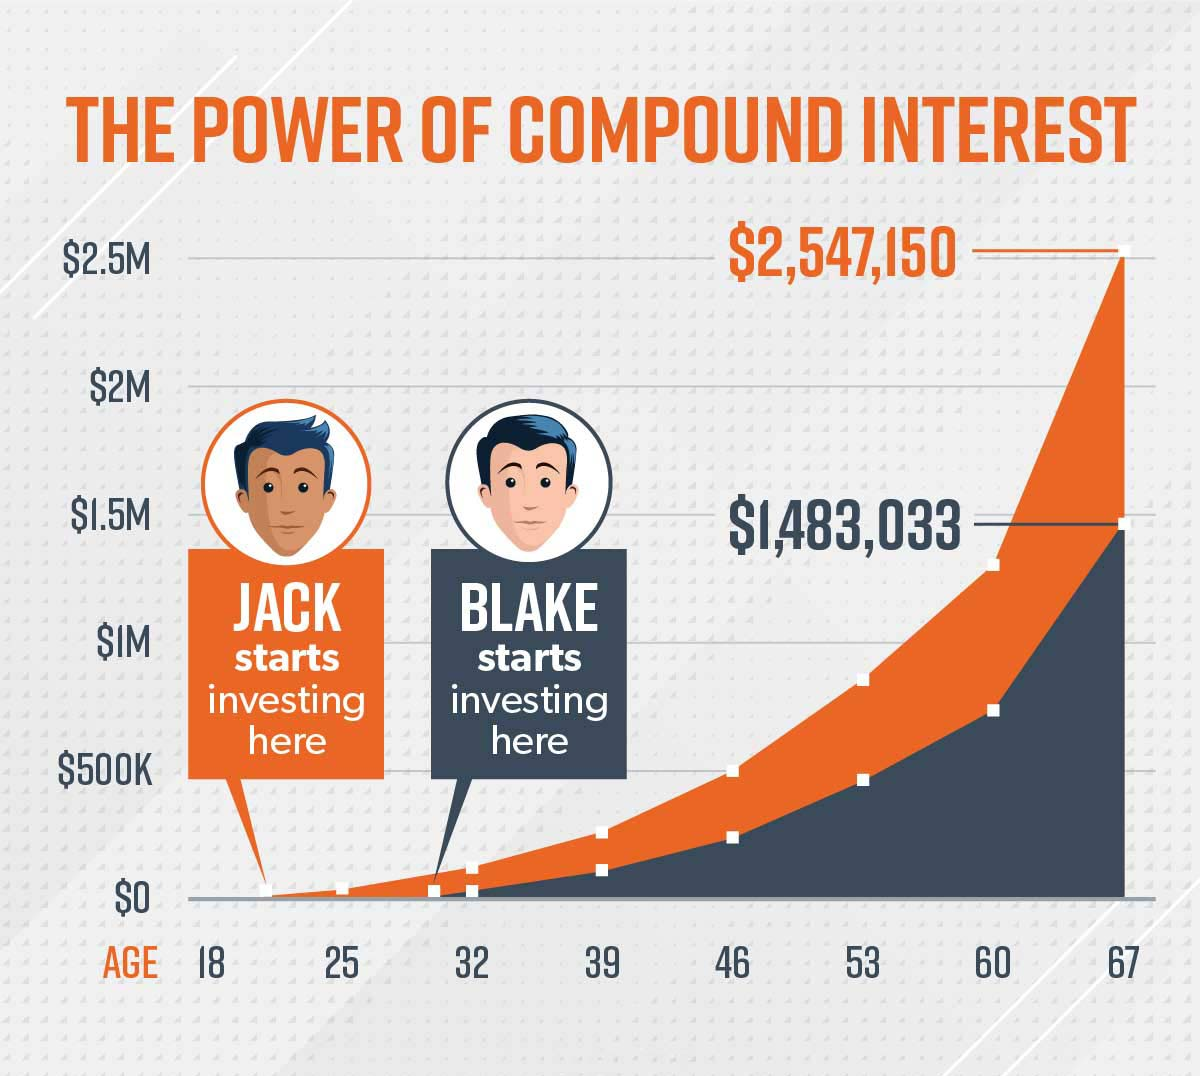 An image shows an illustrated graph of Jack and Blake's investments growing over time.